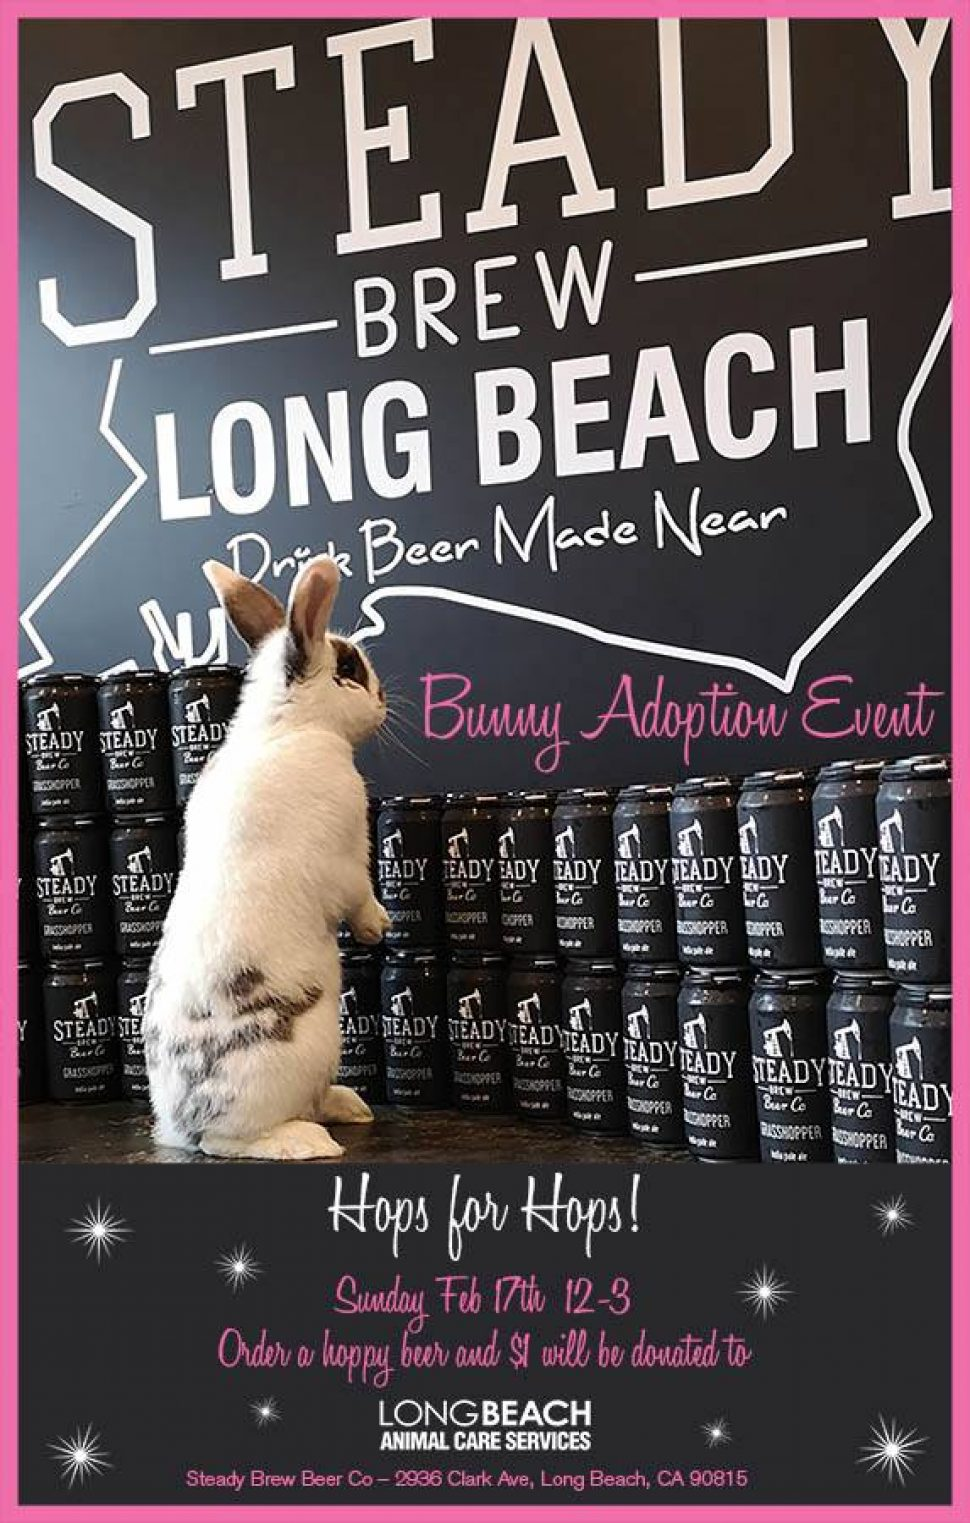 Ad for an event with a white rabbit with black ears and one black spot staring at a row of cans.